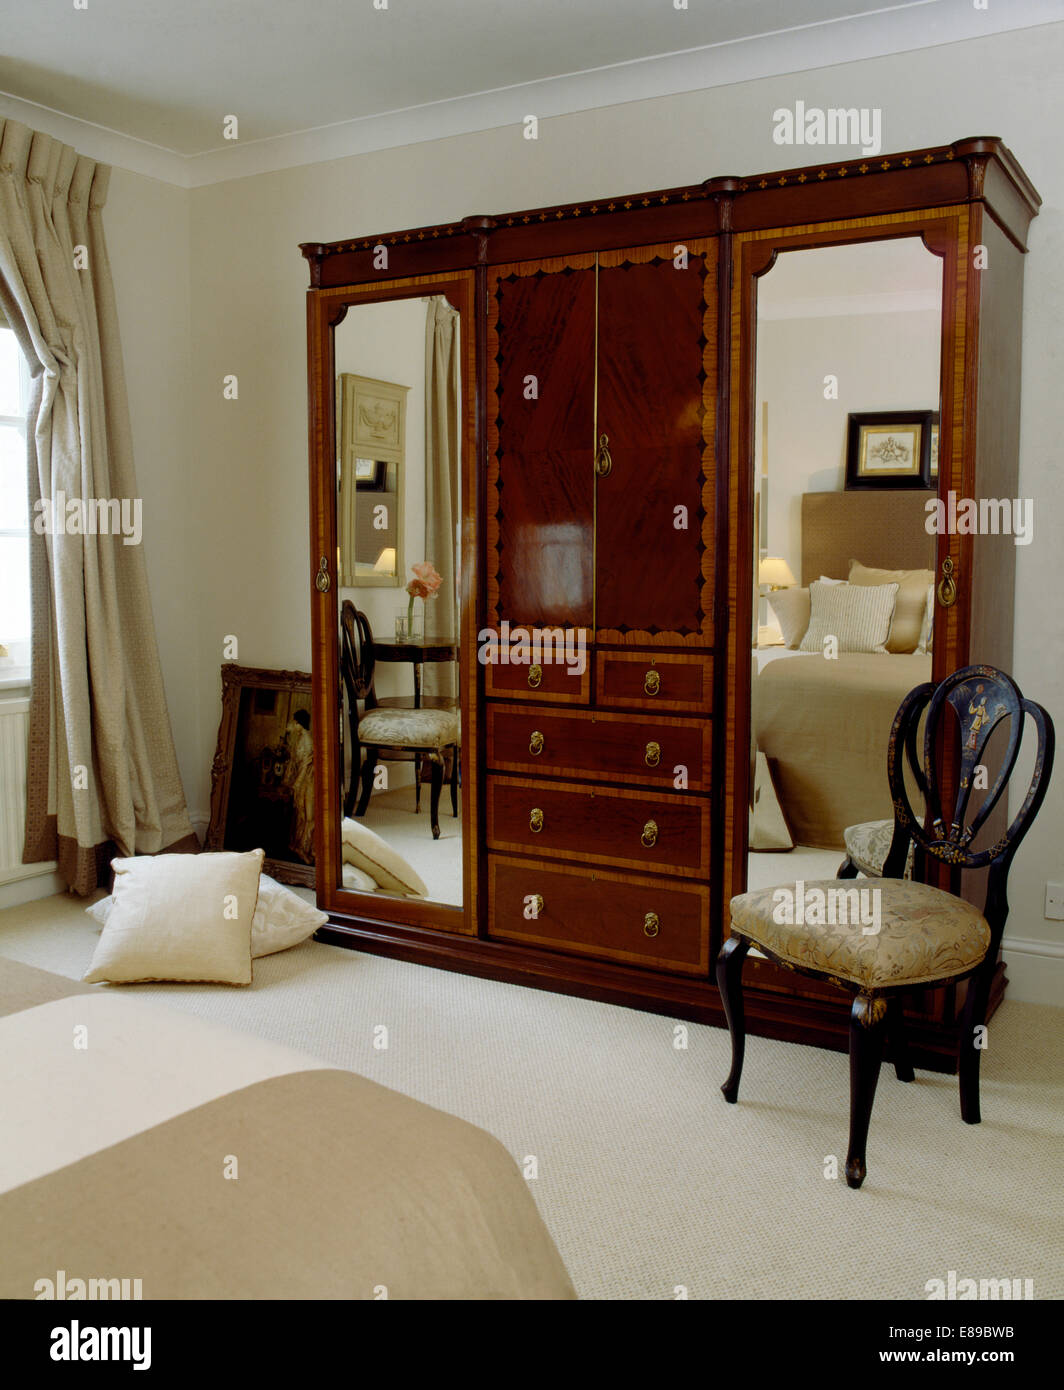 buy popular db58f bb845 Antique chair beside large wardrobe with mirrored doors in ...